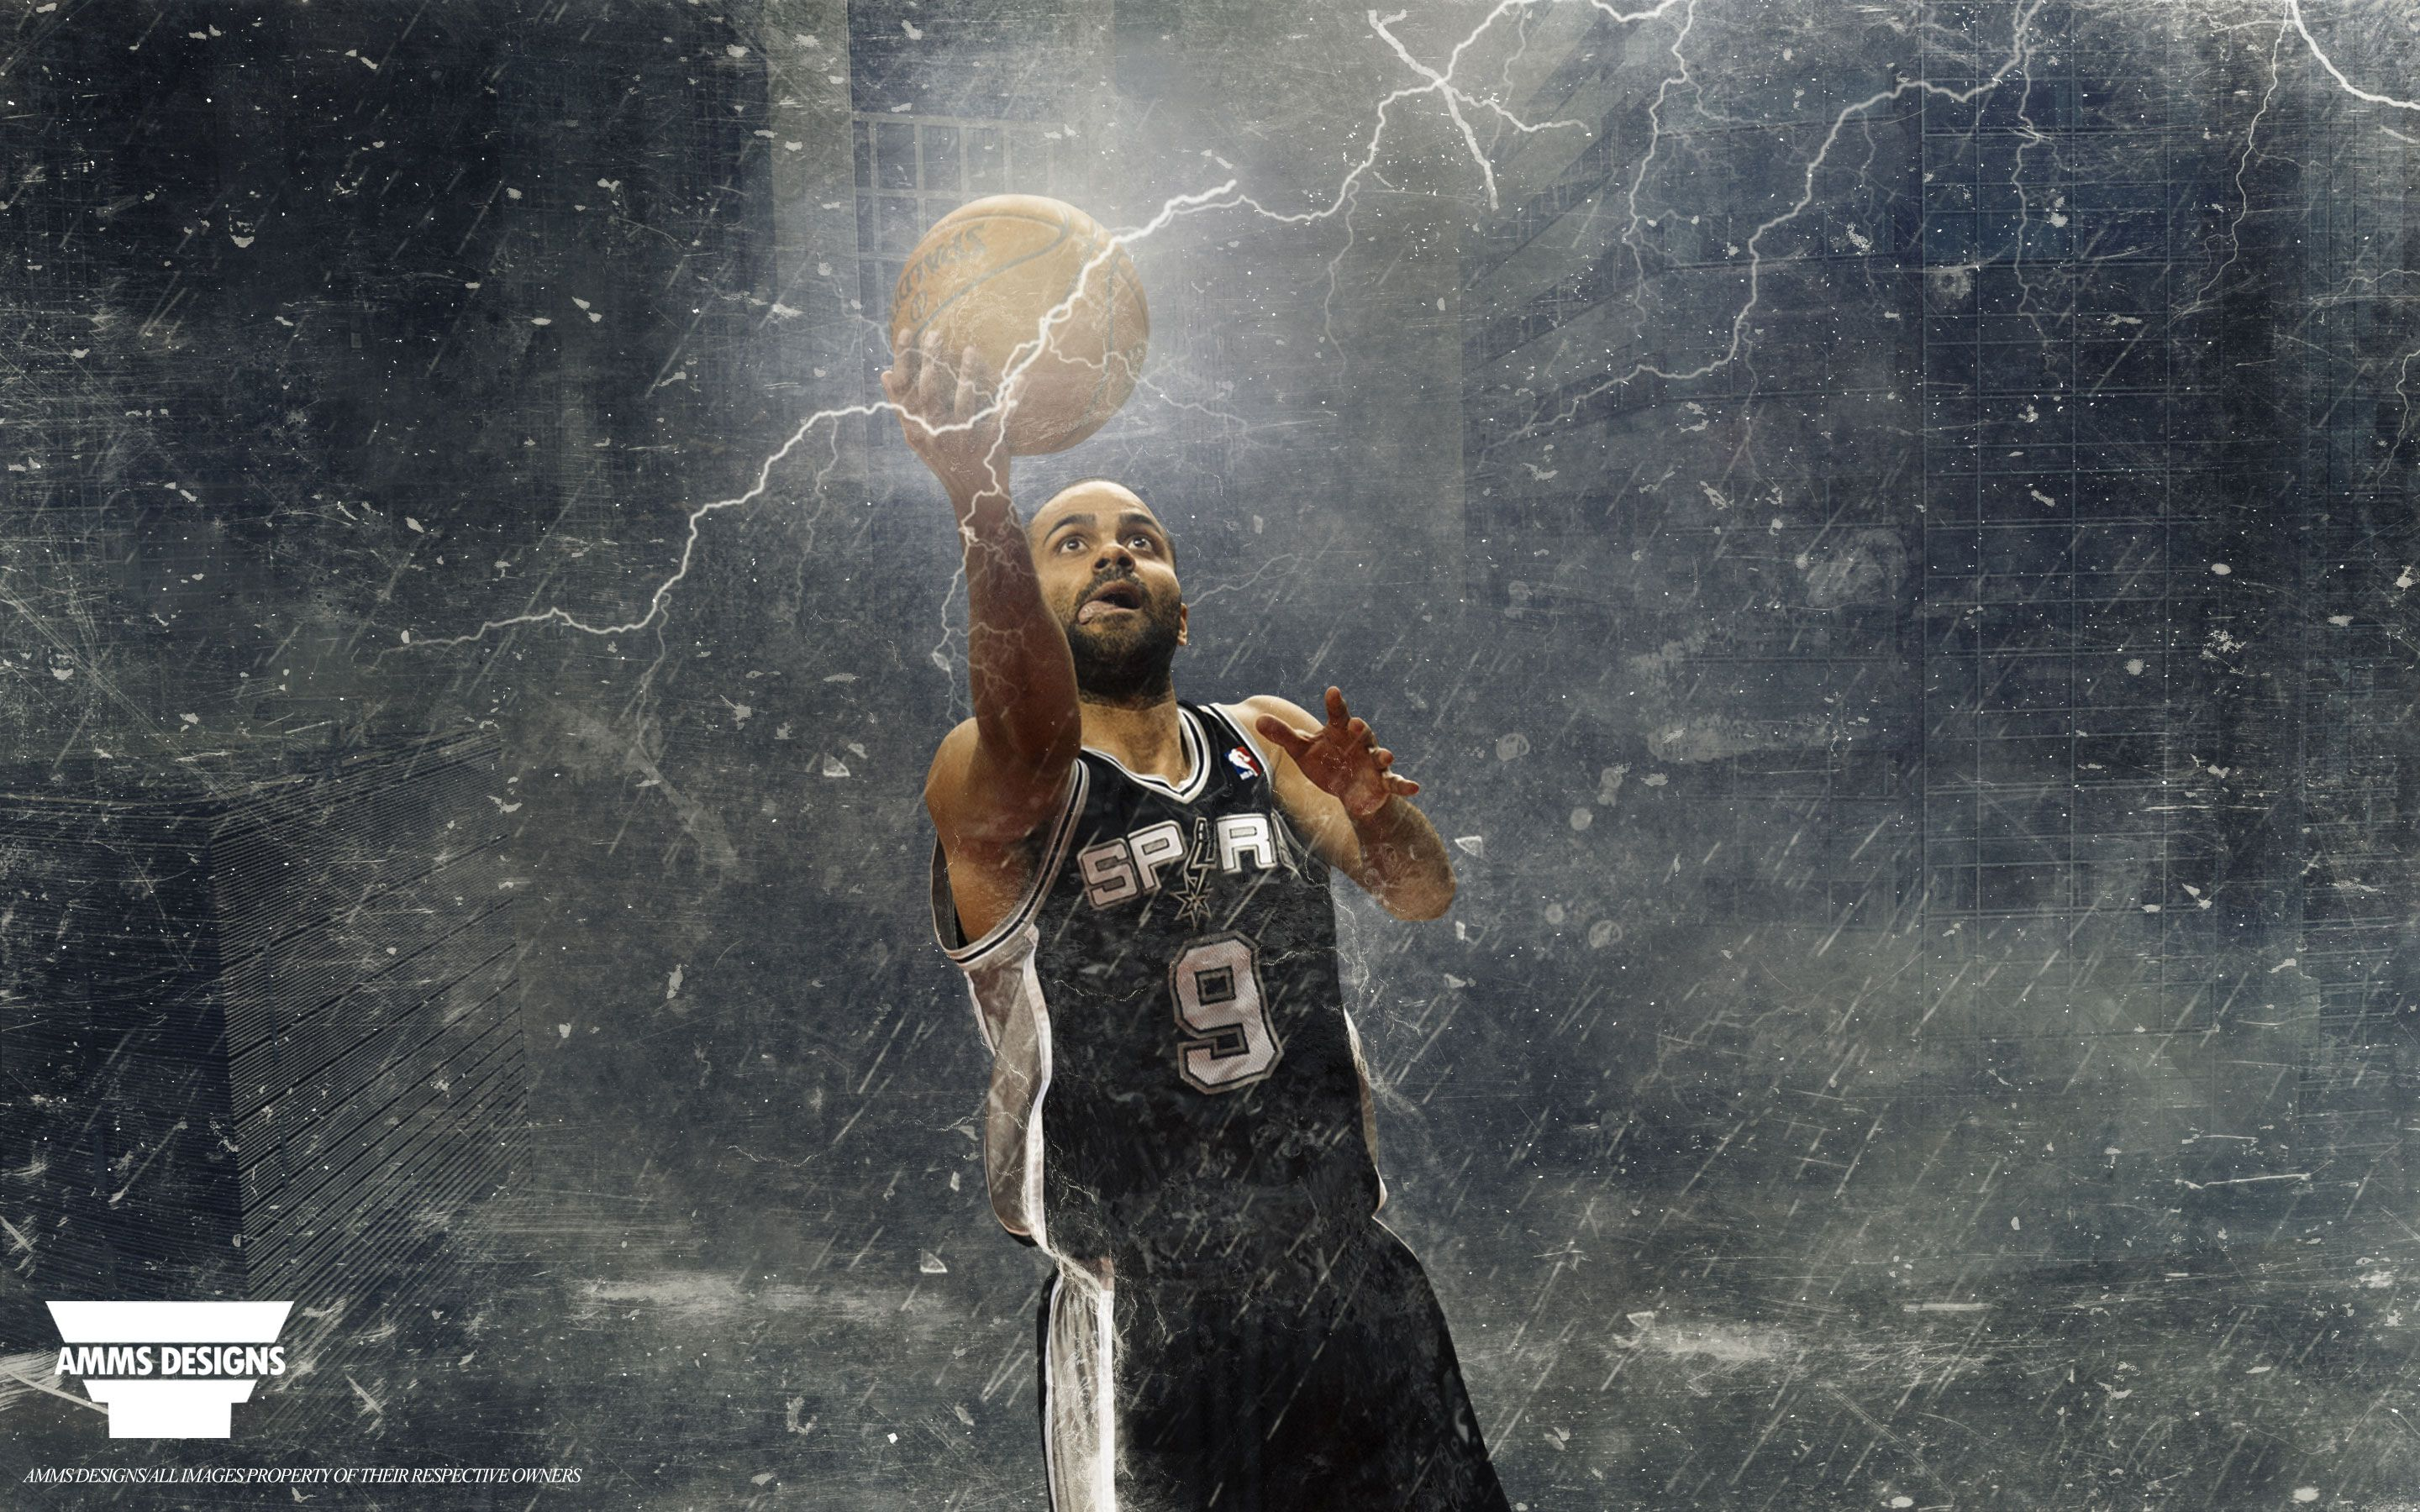 2880x1800 Tony Parker Wallpapers | Basketball Wallpapers at ...